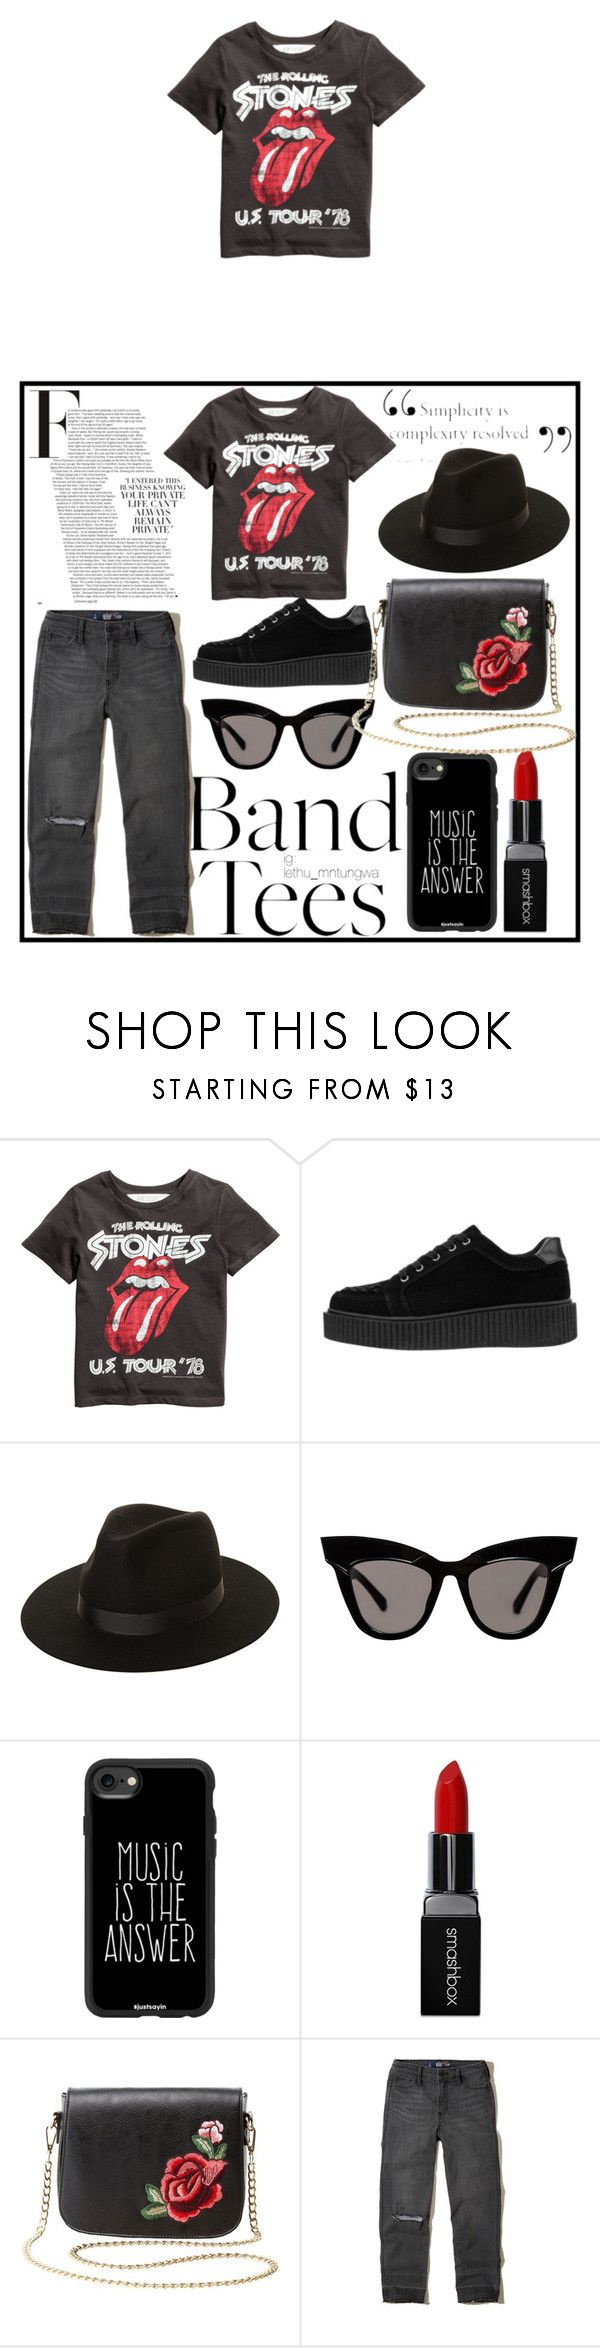 """#bandtees"" by edithhlatshwayo on Polyvore featuring Lack of Color, Casetify, Smashbox, Charlotte Russe and Hollister Co."